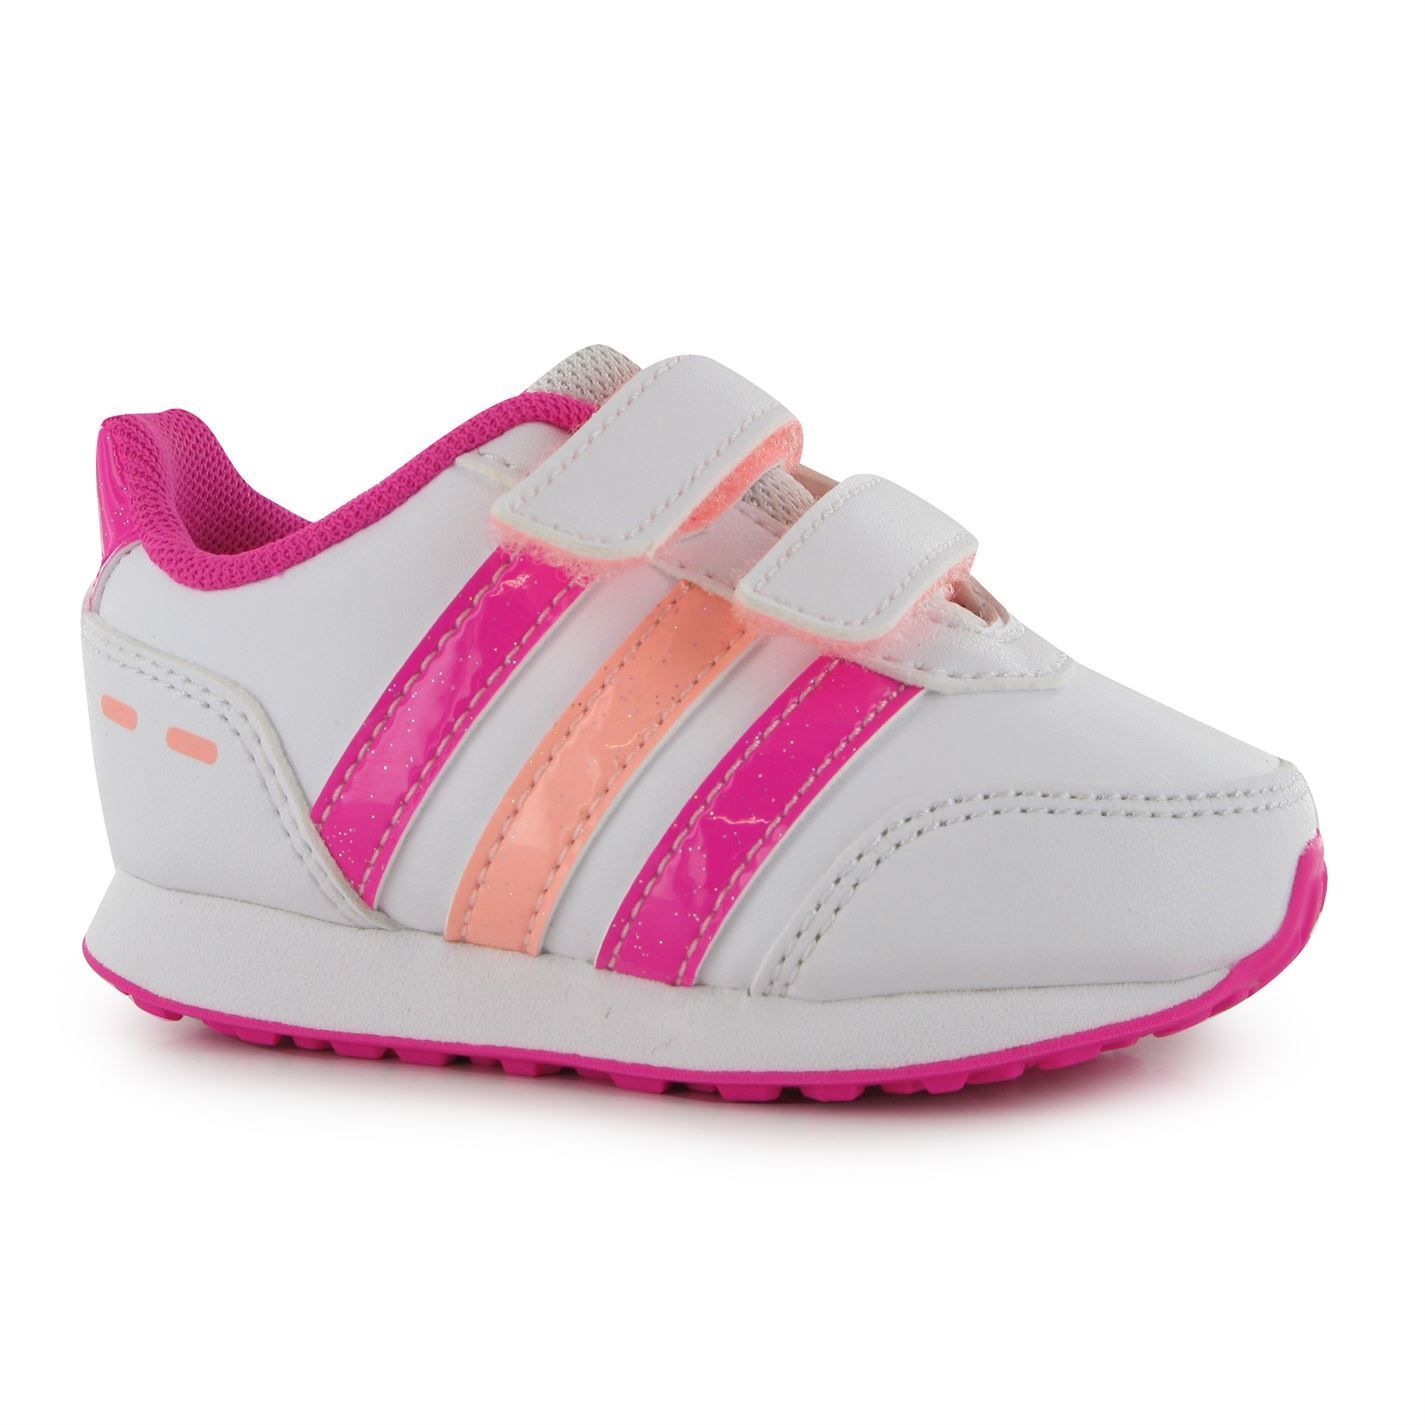 Adidas Switch Syn Trainers Infant Girls WhitePinkOrange Sneakers Sports Shoes